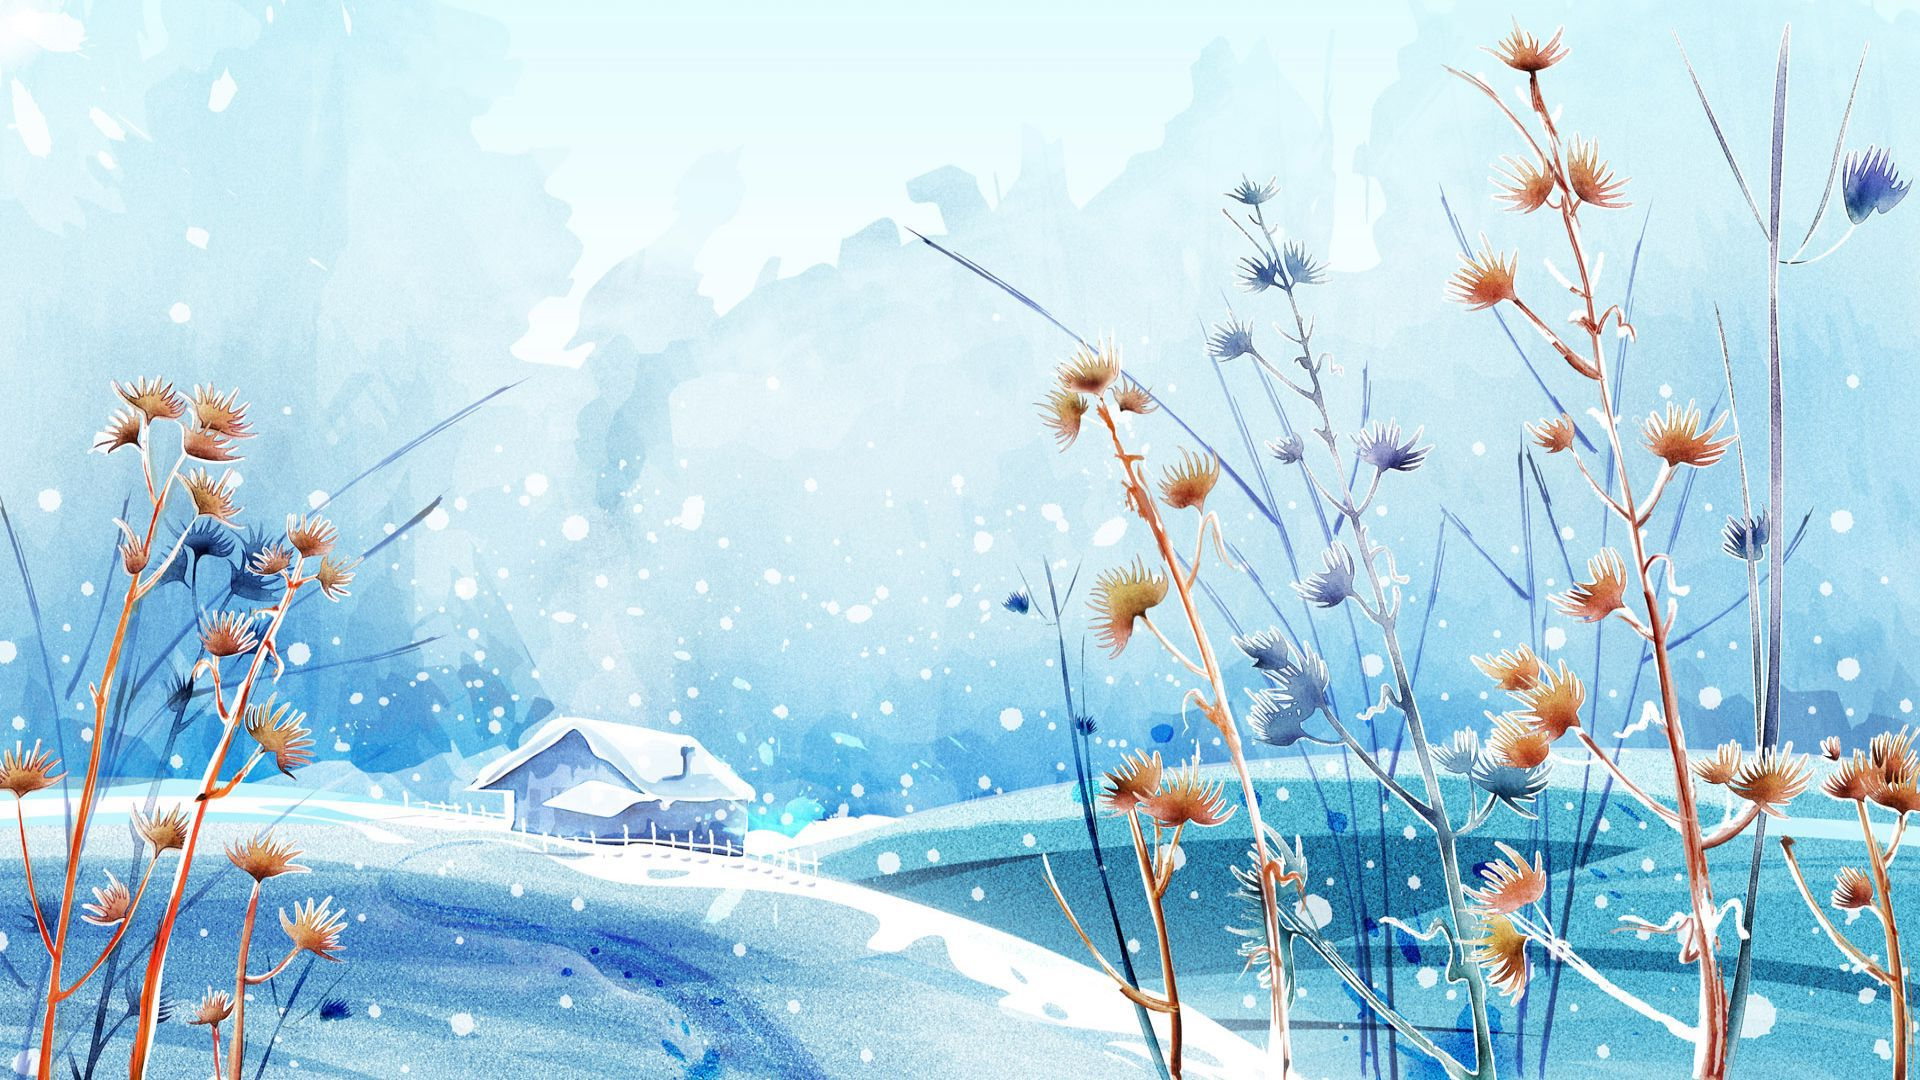 Nature Anime winter Scenery Background Wallpaper